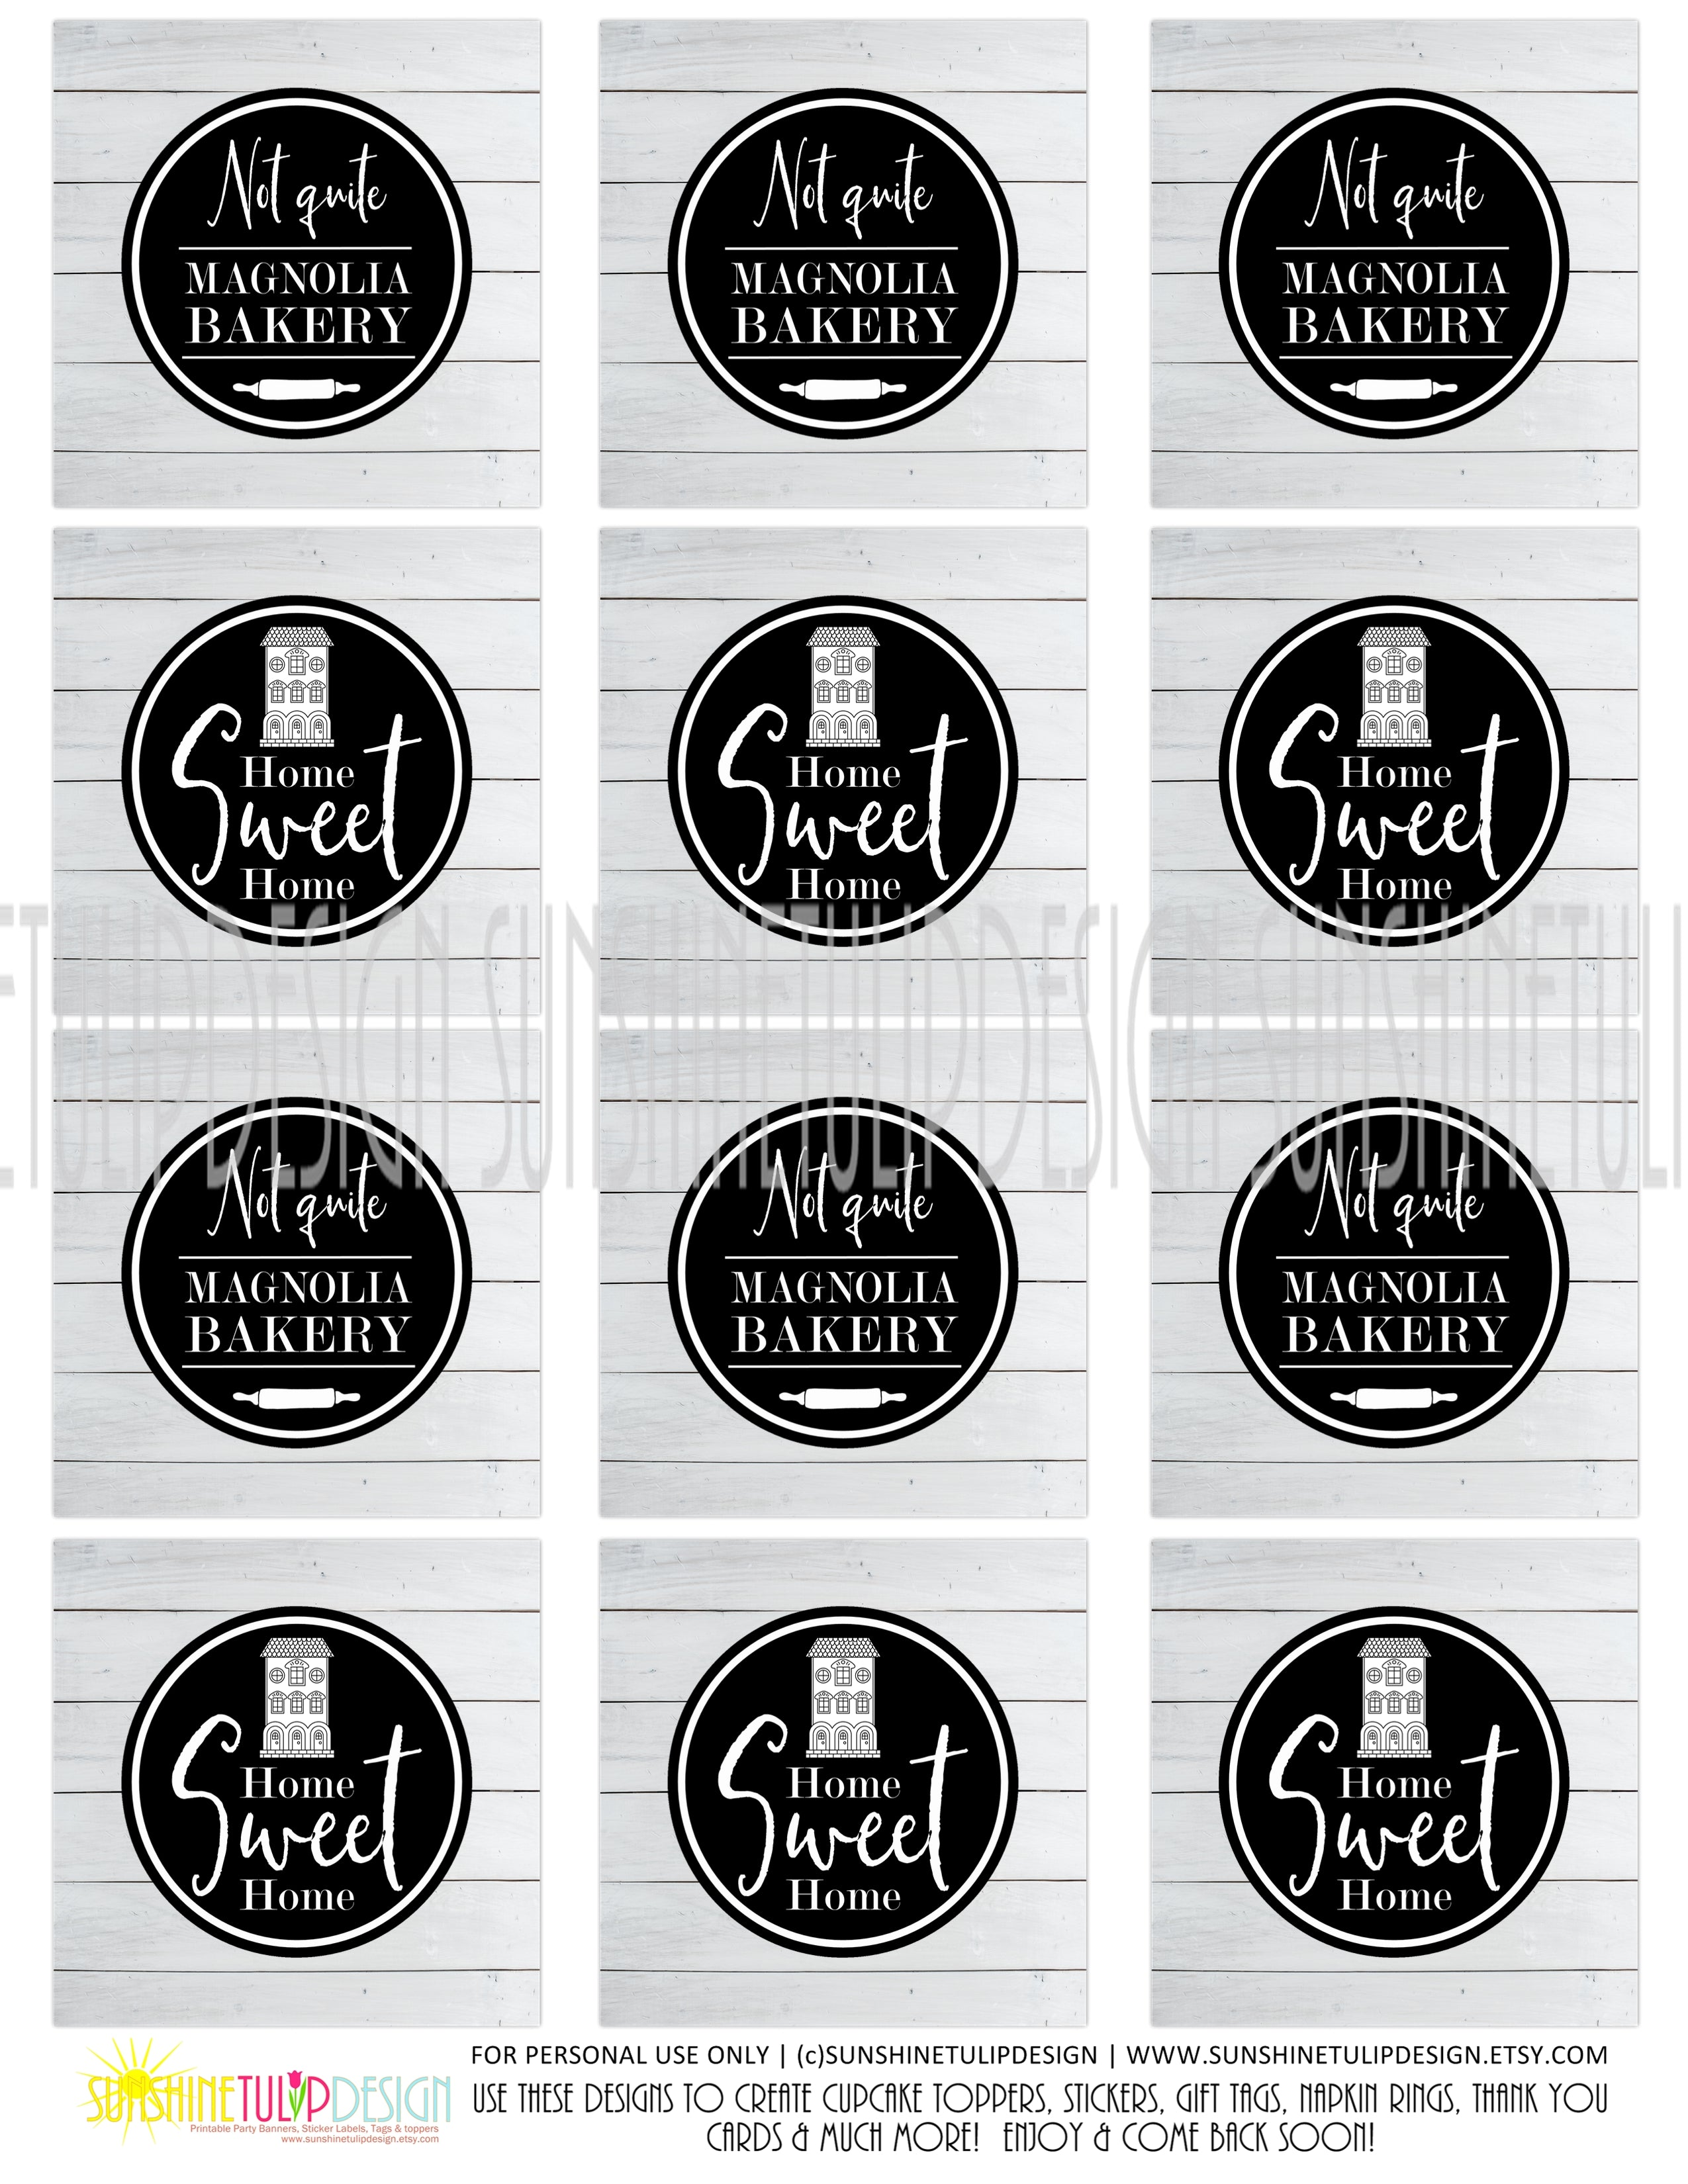 image relating to Tags Printable named Printable Farmhouse Bash Reward Tags, Printable Shiplap Farmhouse Cupcake Toppers, Dwelling Adorable Household Present Tags as a result of SUNSHINETULIPDESIGN